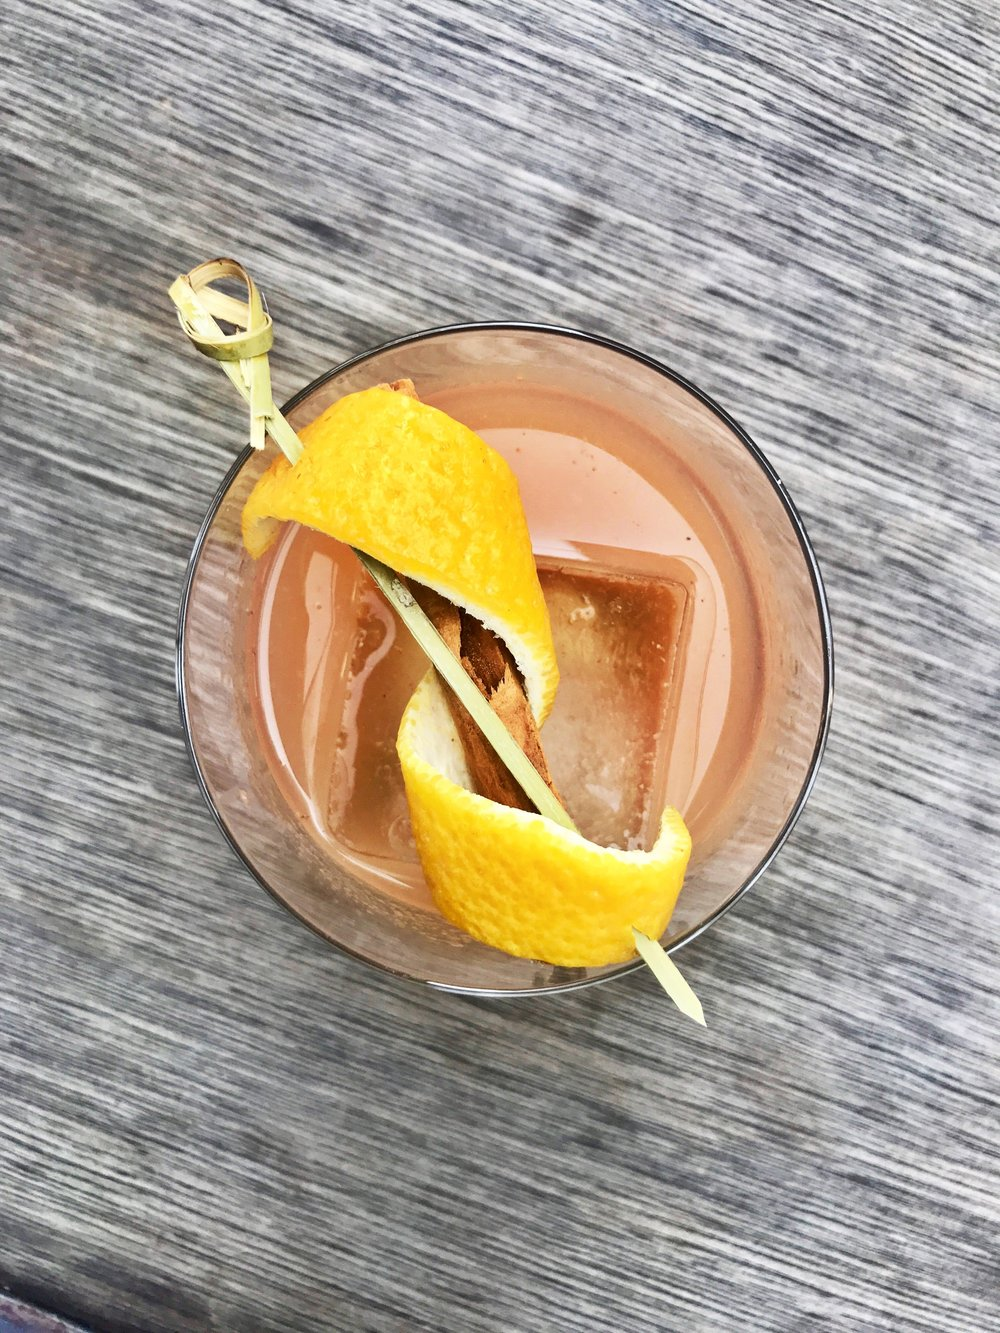 The Whiskey Fritter   1.0 oz. Louis Applestrong 0.5 oz. Johnny Pumpkinseed 1.5 oz.Bulleit Bourbon Pinch of ground nutmeg  (Recipe by Allison Torres, Head Bartender of the Refinery Rooftop Hotel)